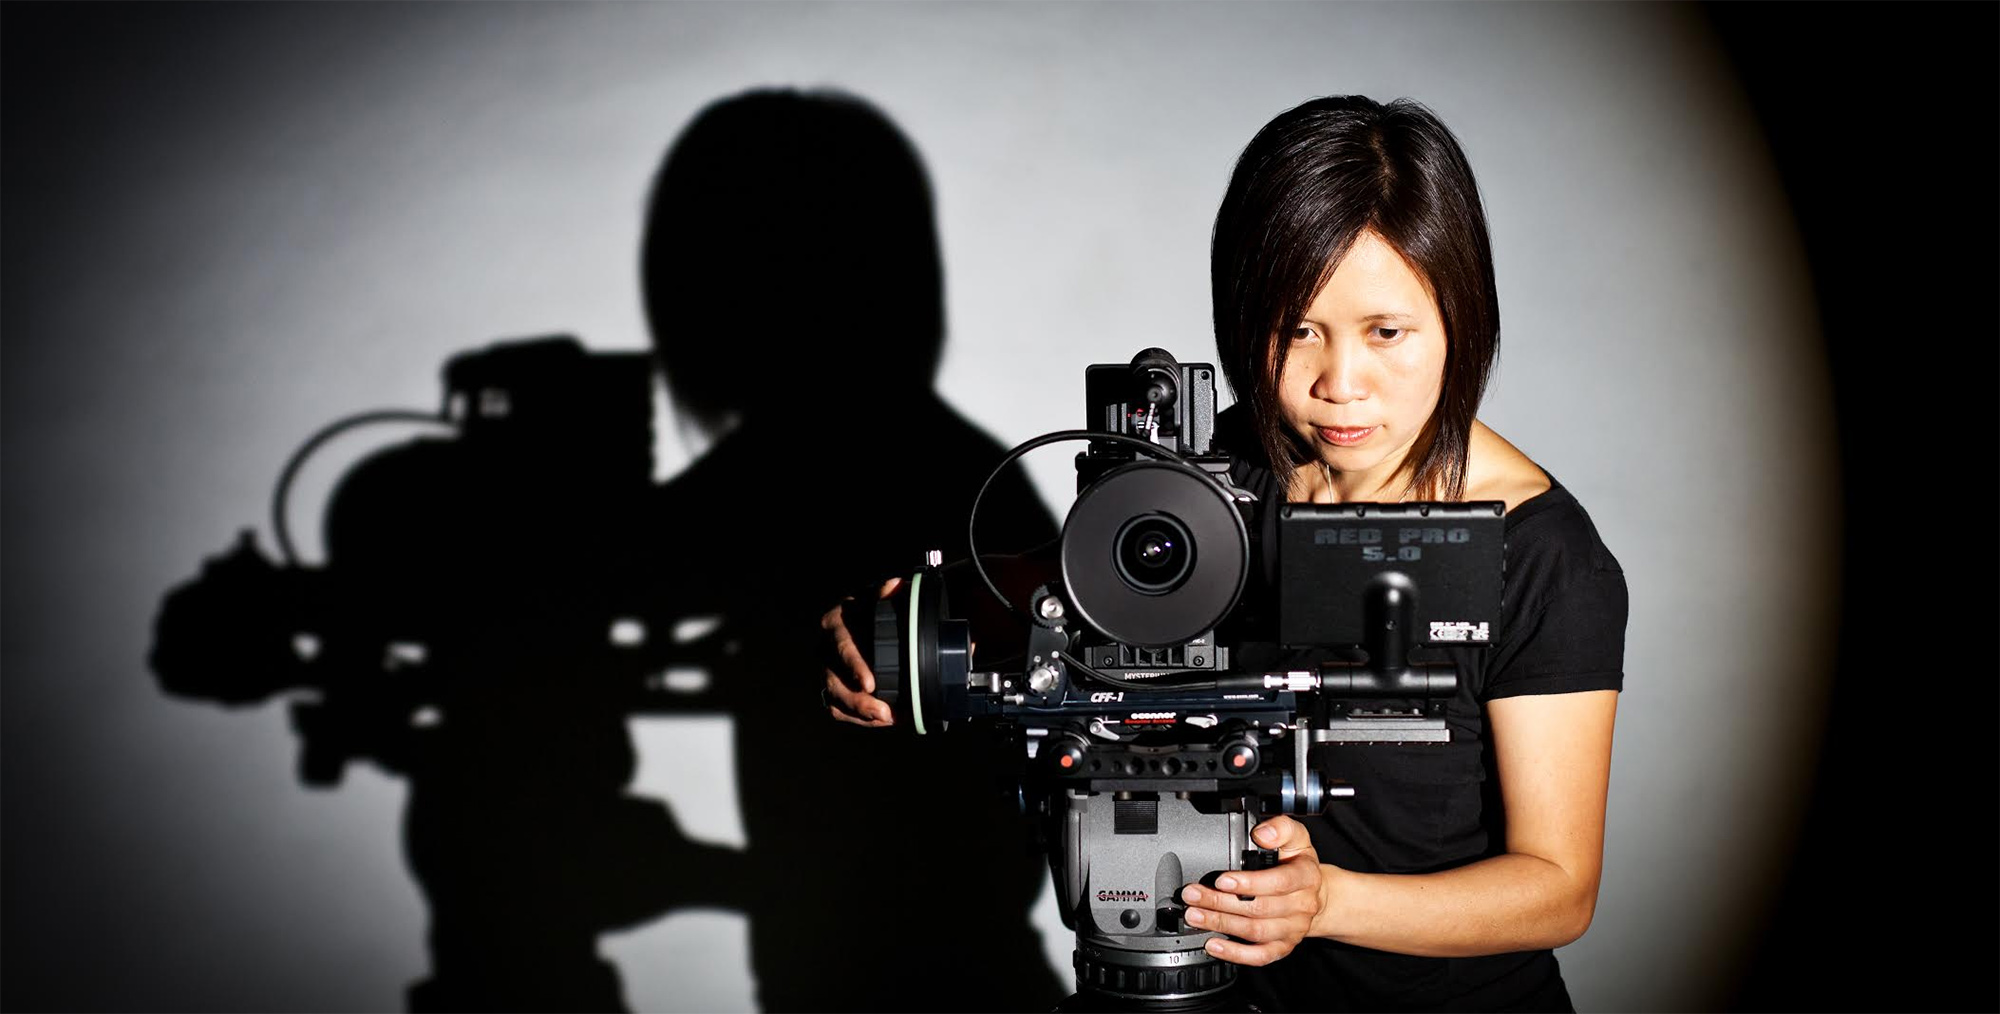 Aside from your raw talent, one of the most essential components of filmmaking is finding funding. Luckily there are numerous initiatives out there offering funding for female filmmakers.